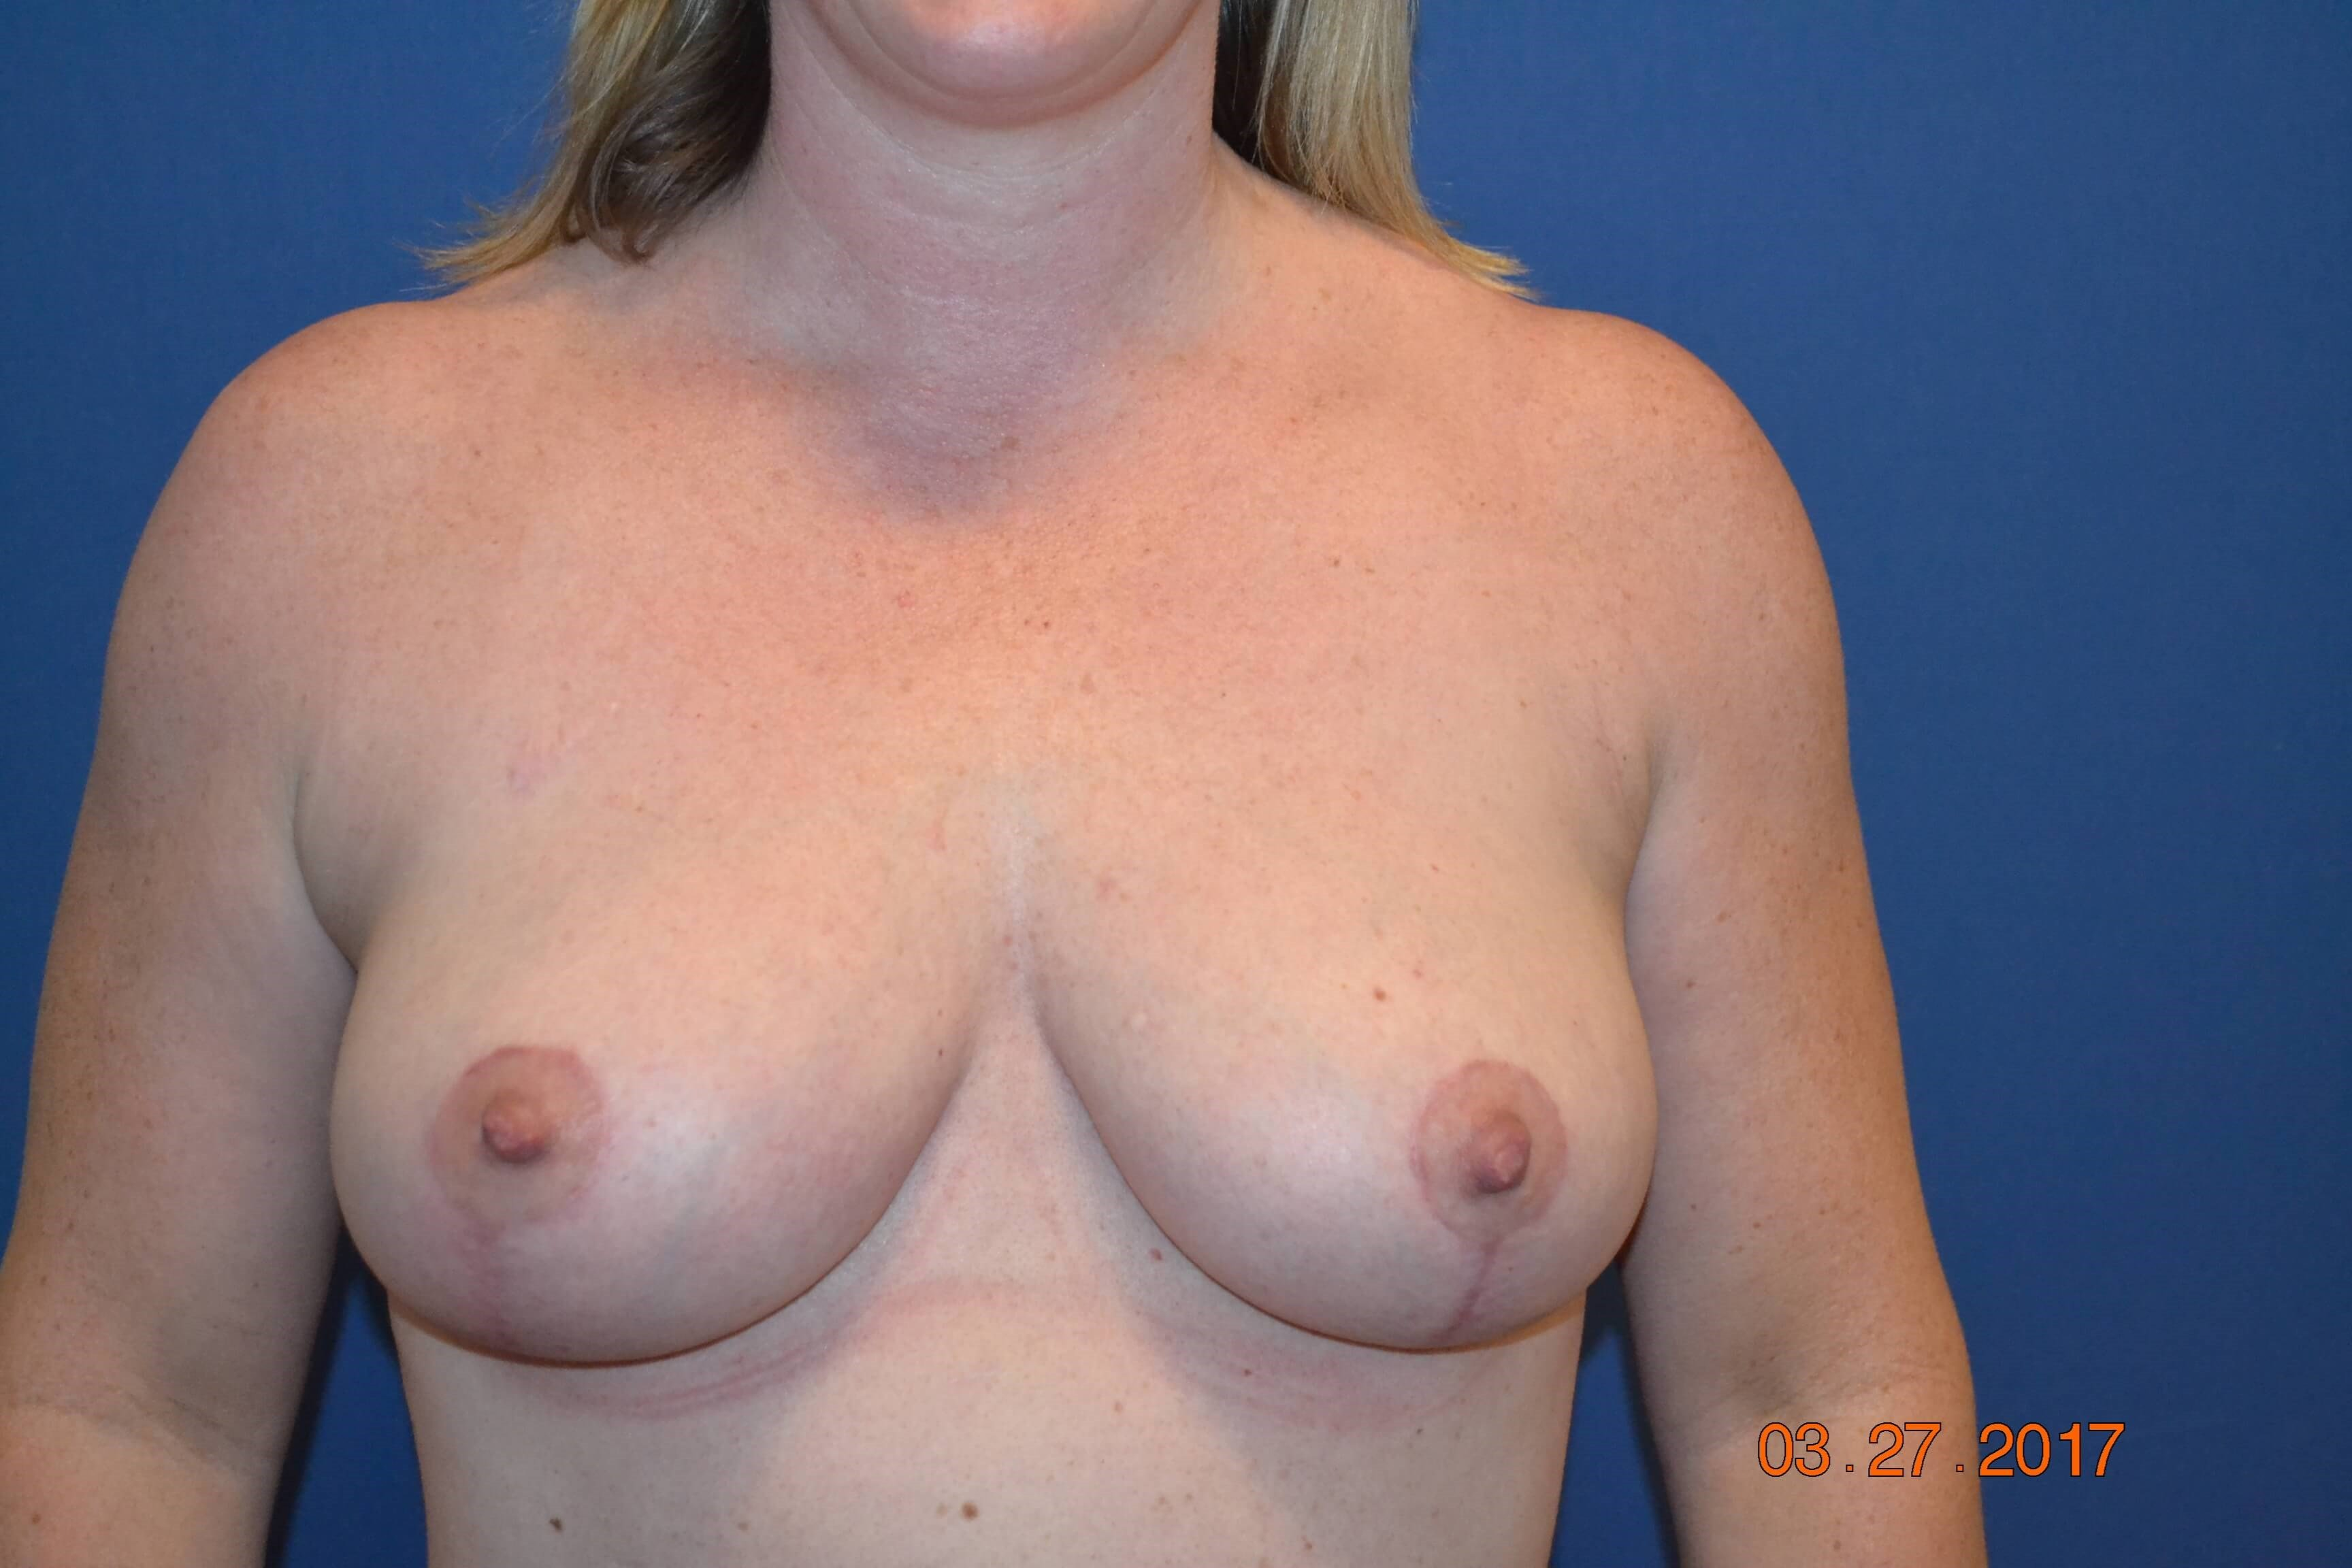 Bilateral Mastopexy After